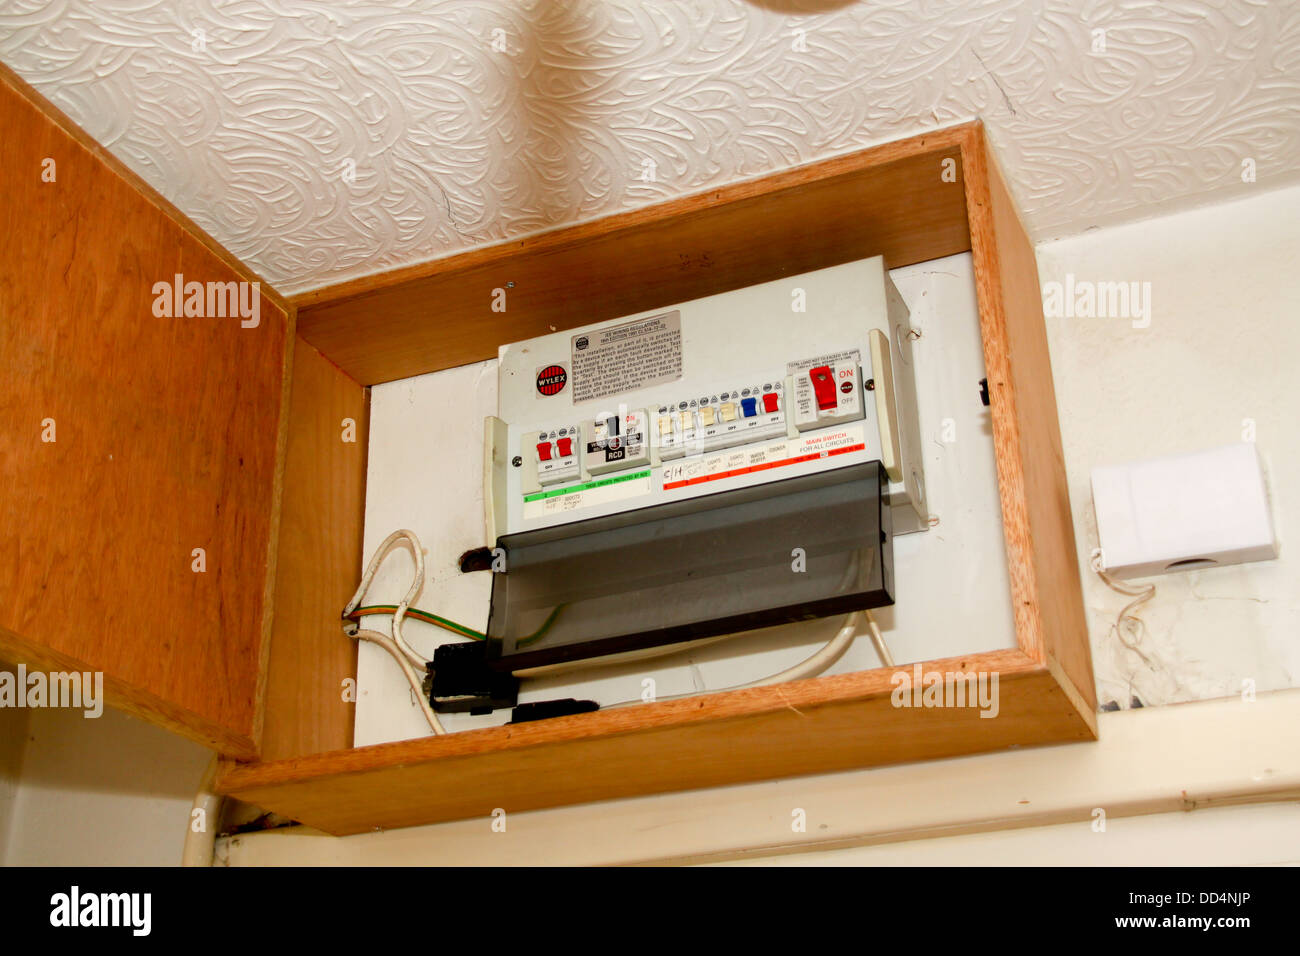 Electrical Distribution Board Stock Photos Panels Circuit Breaker Fires Domestic And Breakers Image